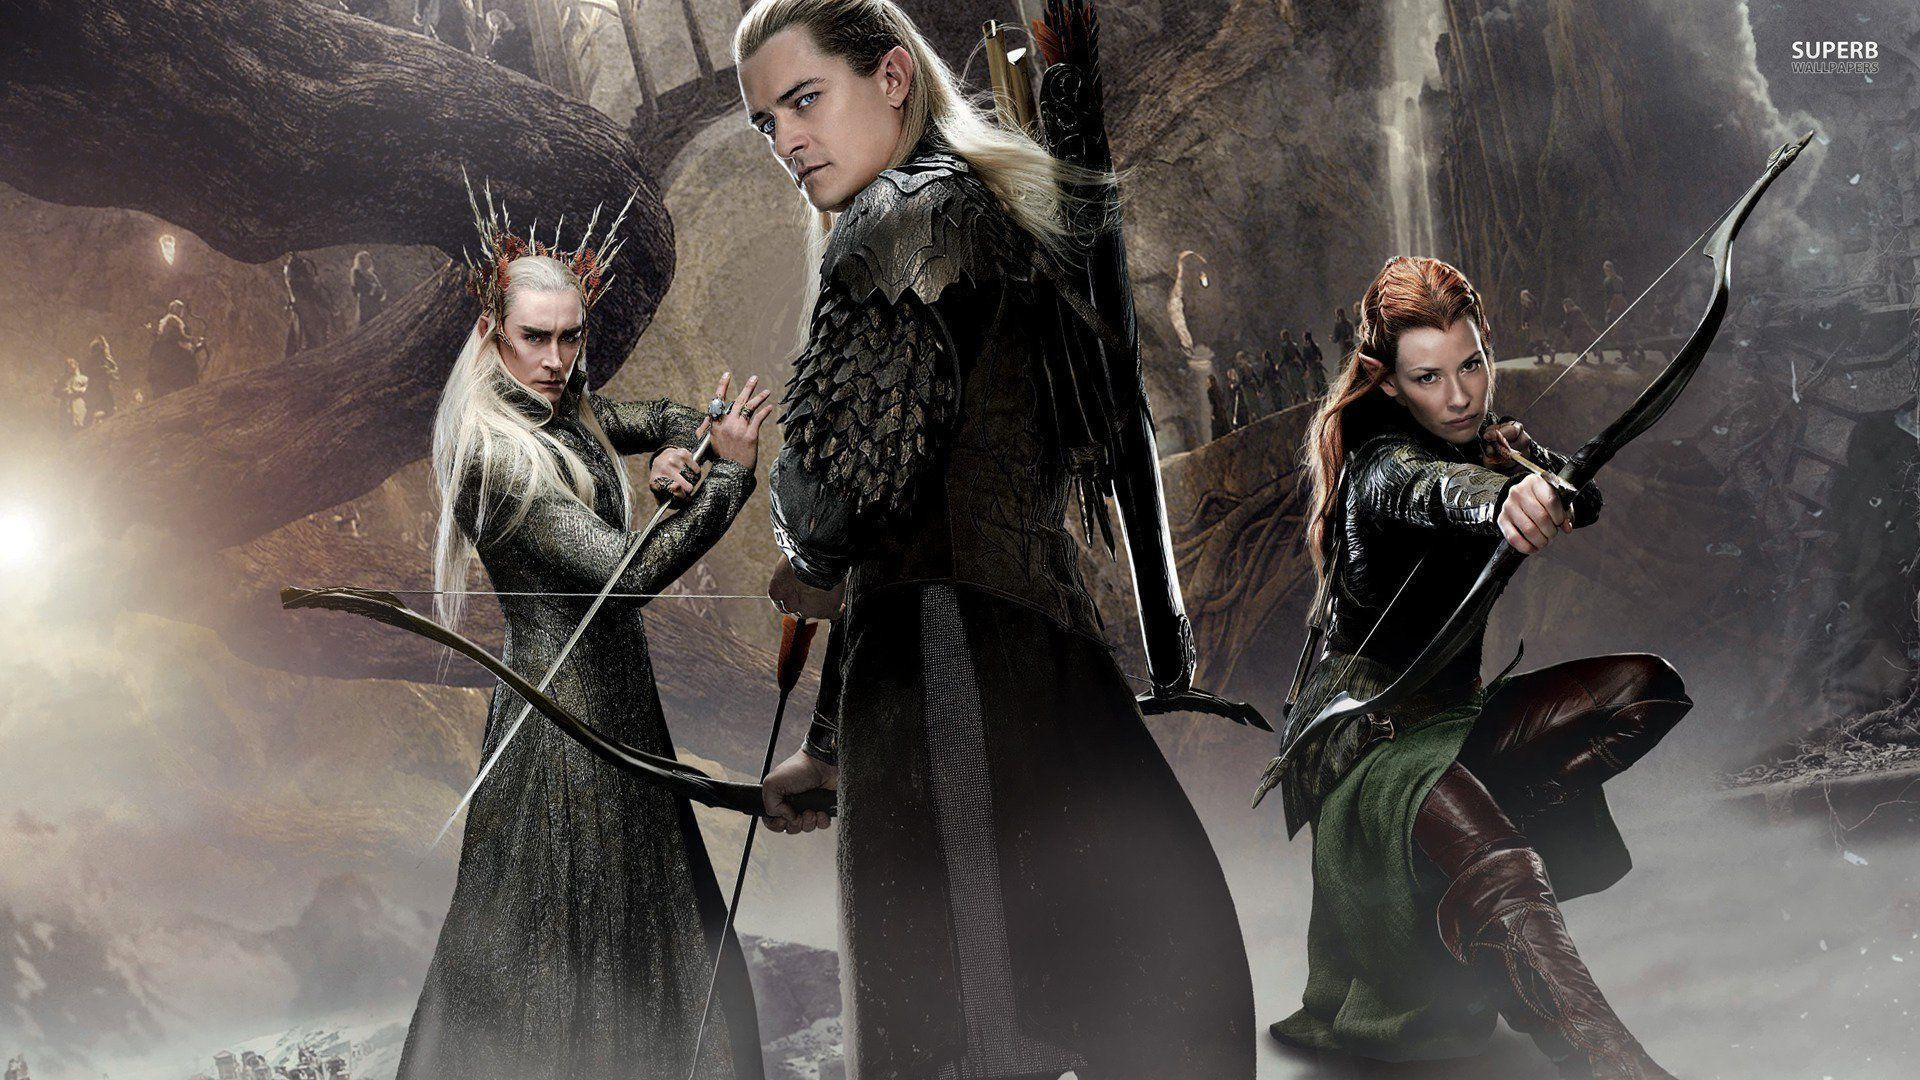 1920x1080 Legolas And Tauriel Wallpapers - Simonwil.com